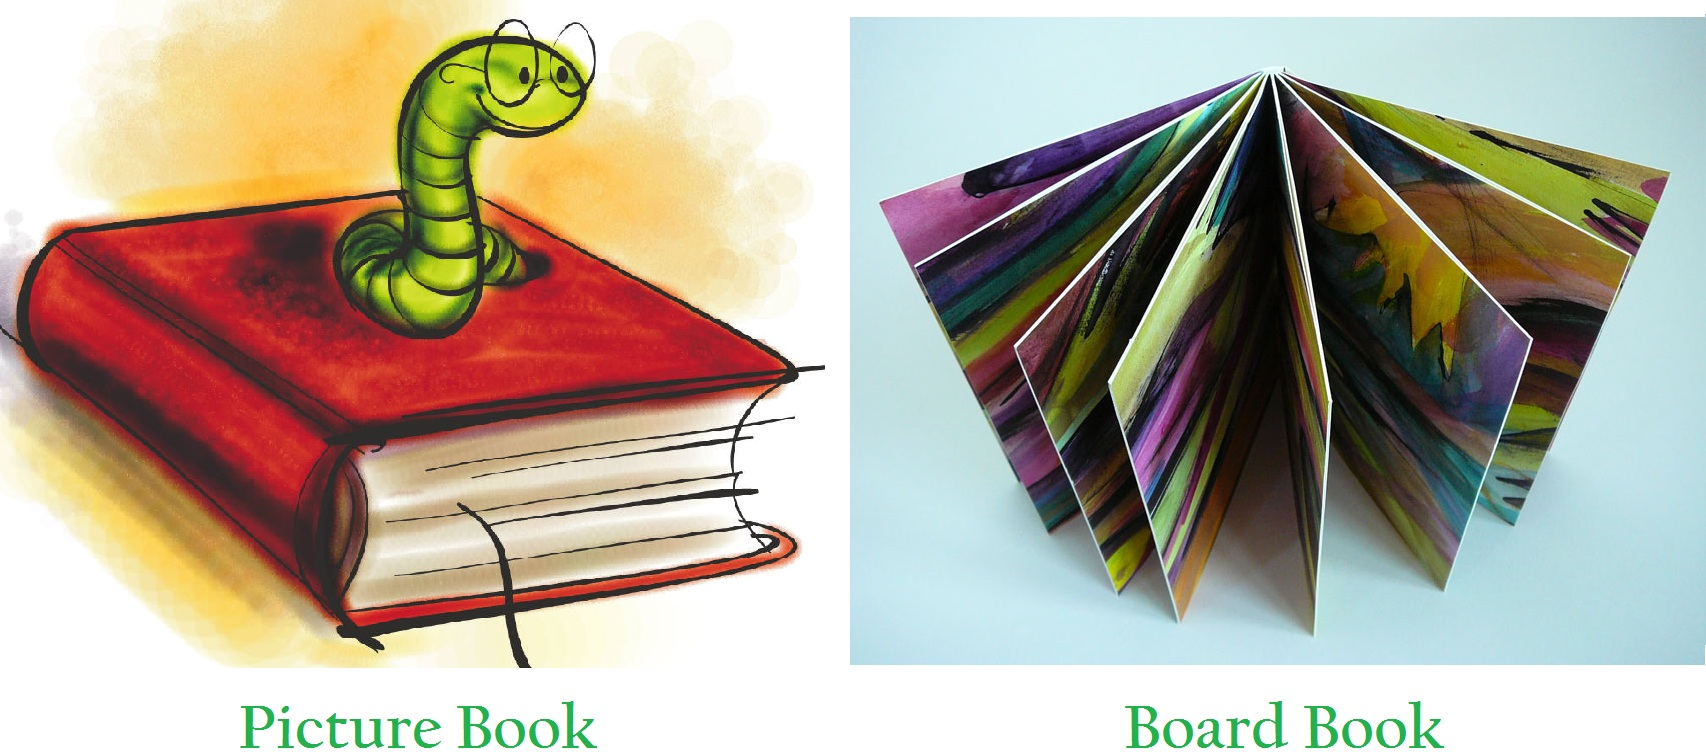 Is A Cloth Book A Hardcover Book ~ What is a board book and how it different from hard cover